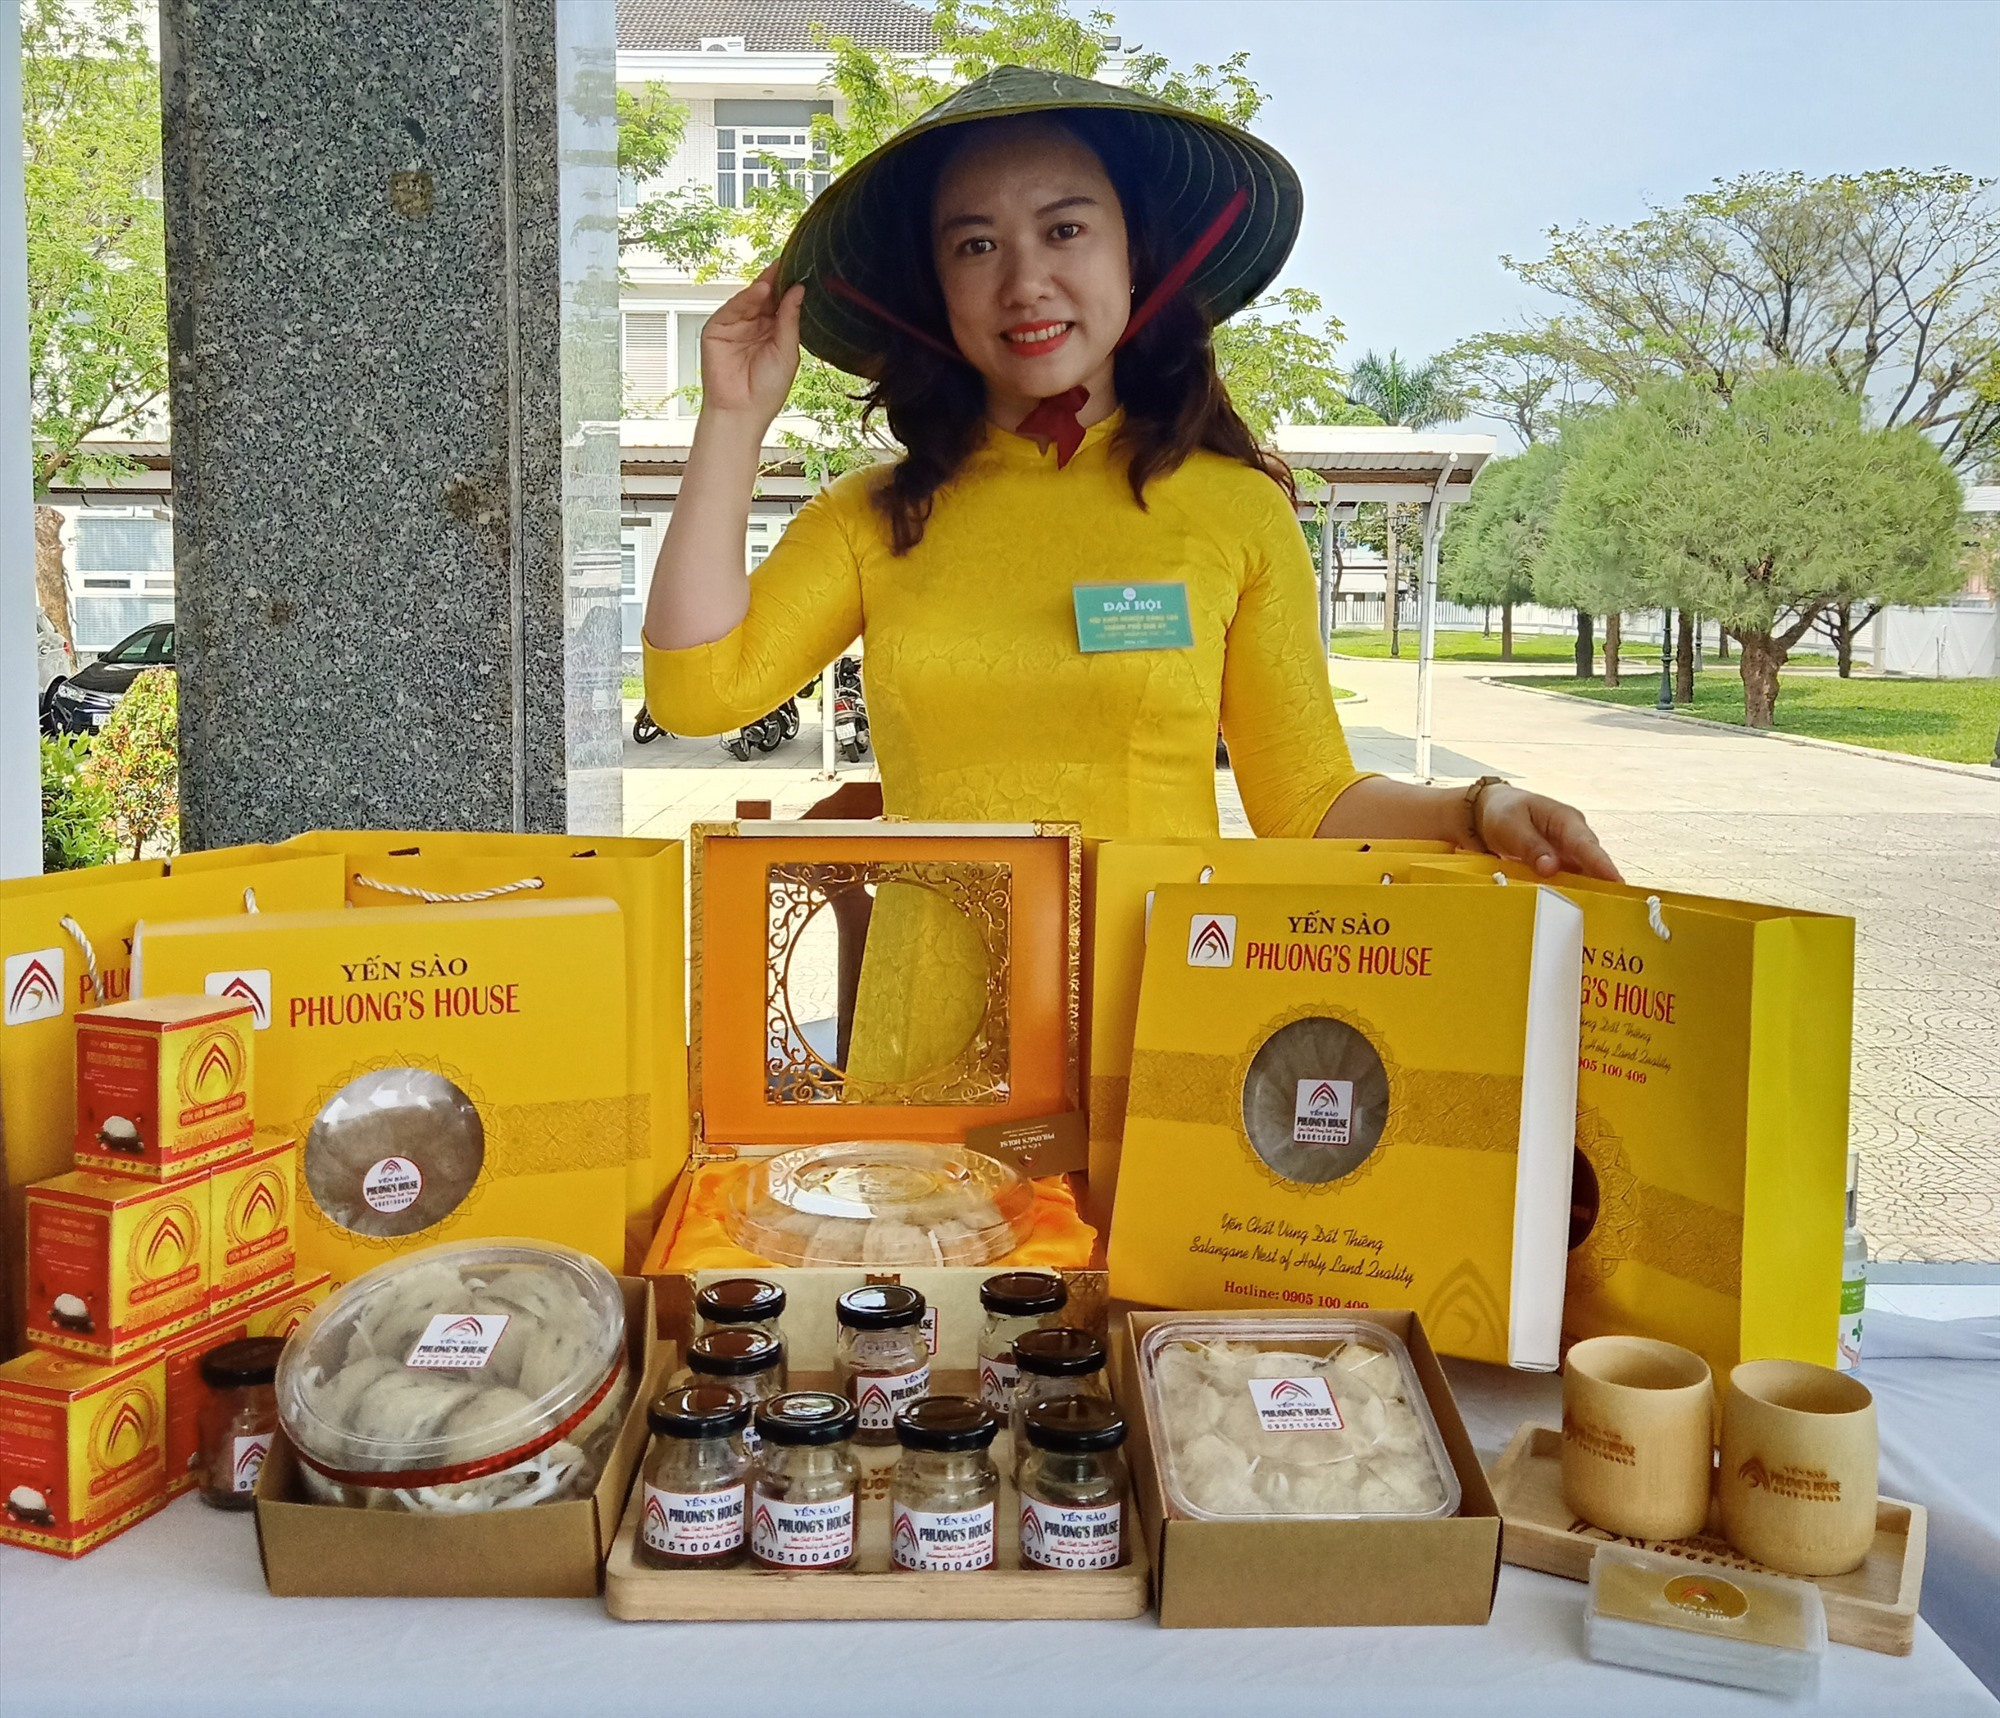 Le Viet Binh Phuong and her products of edible bird's nest